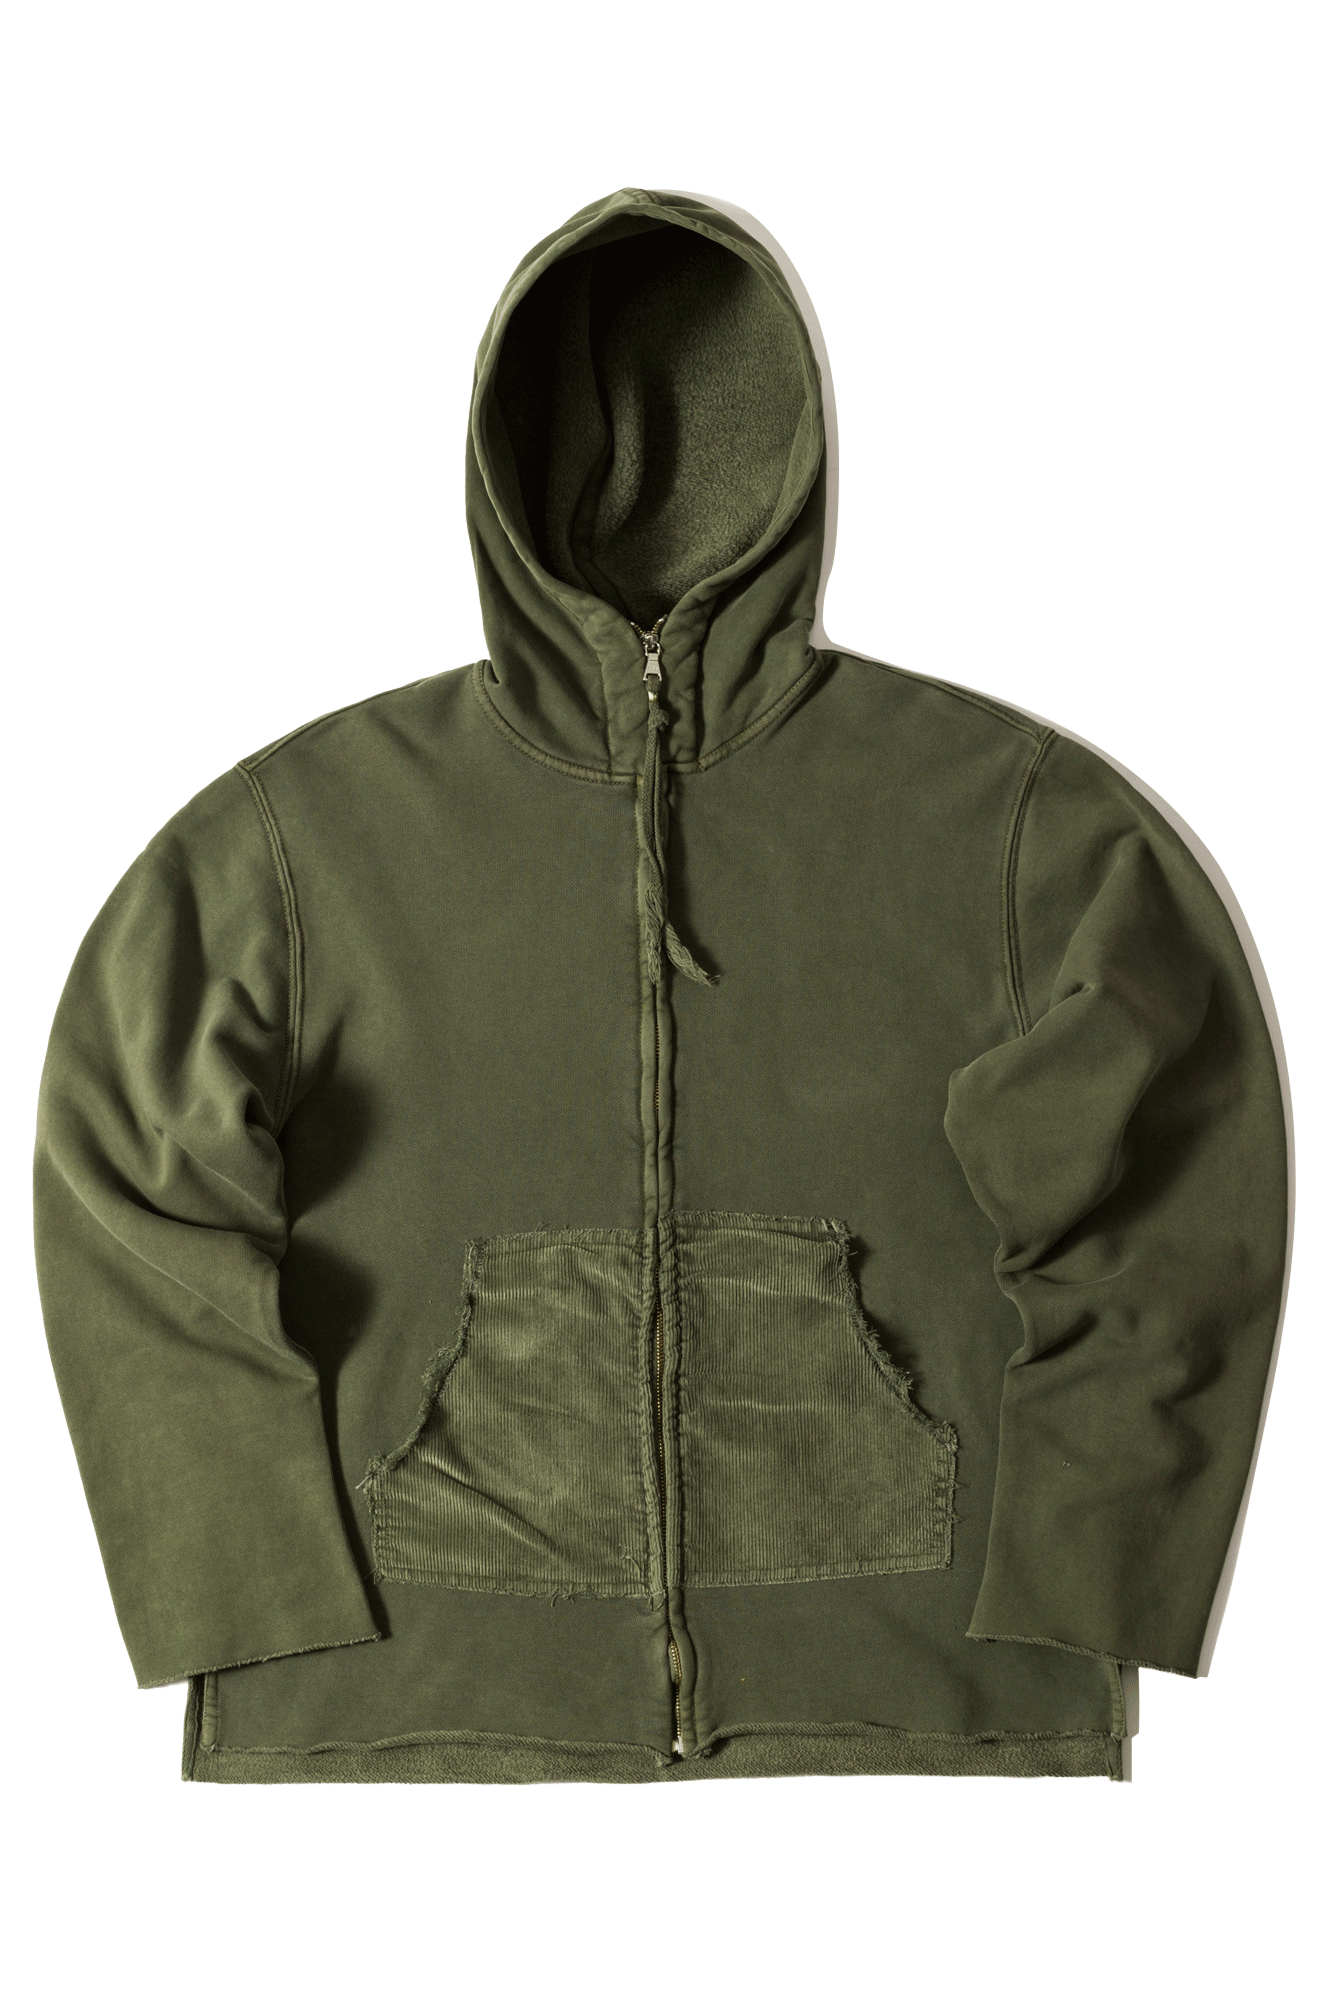 Dr. Collectors Zip-up sweatshirt N1 Hood Heavy Fleece Green SWEATN1#000#GRN#XS - One Block Down